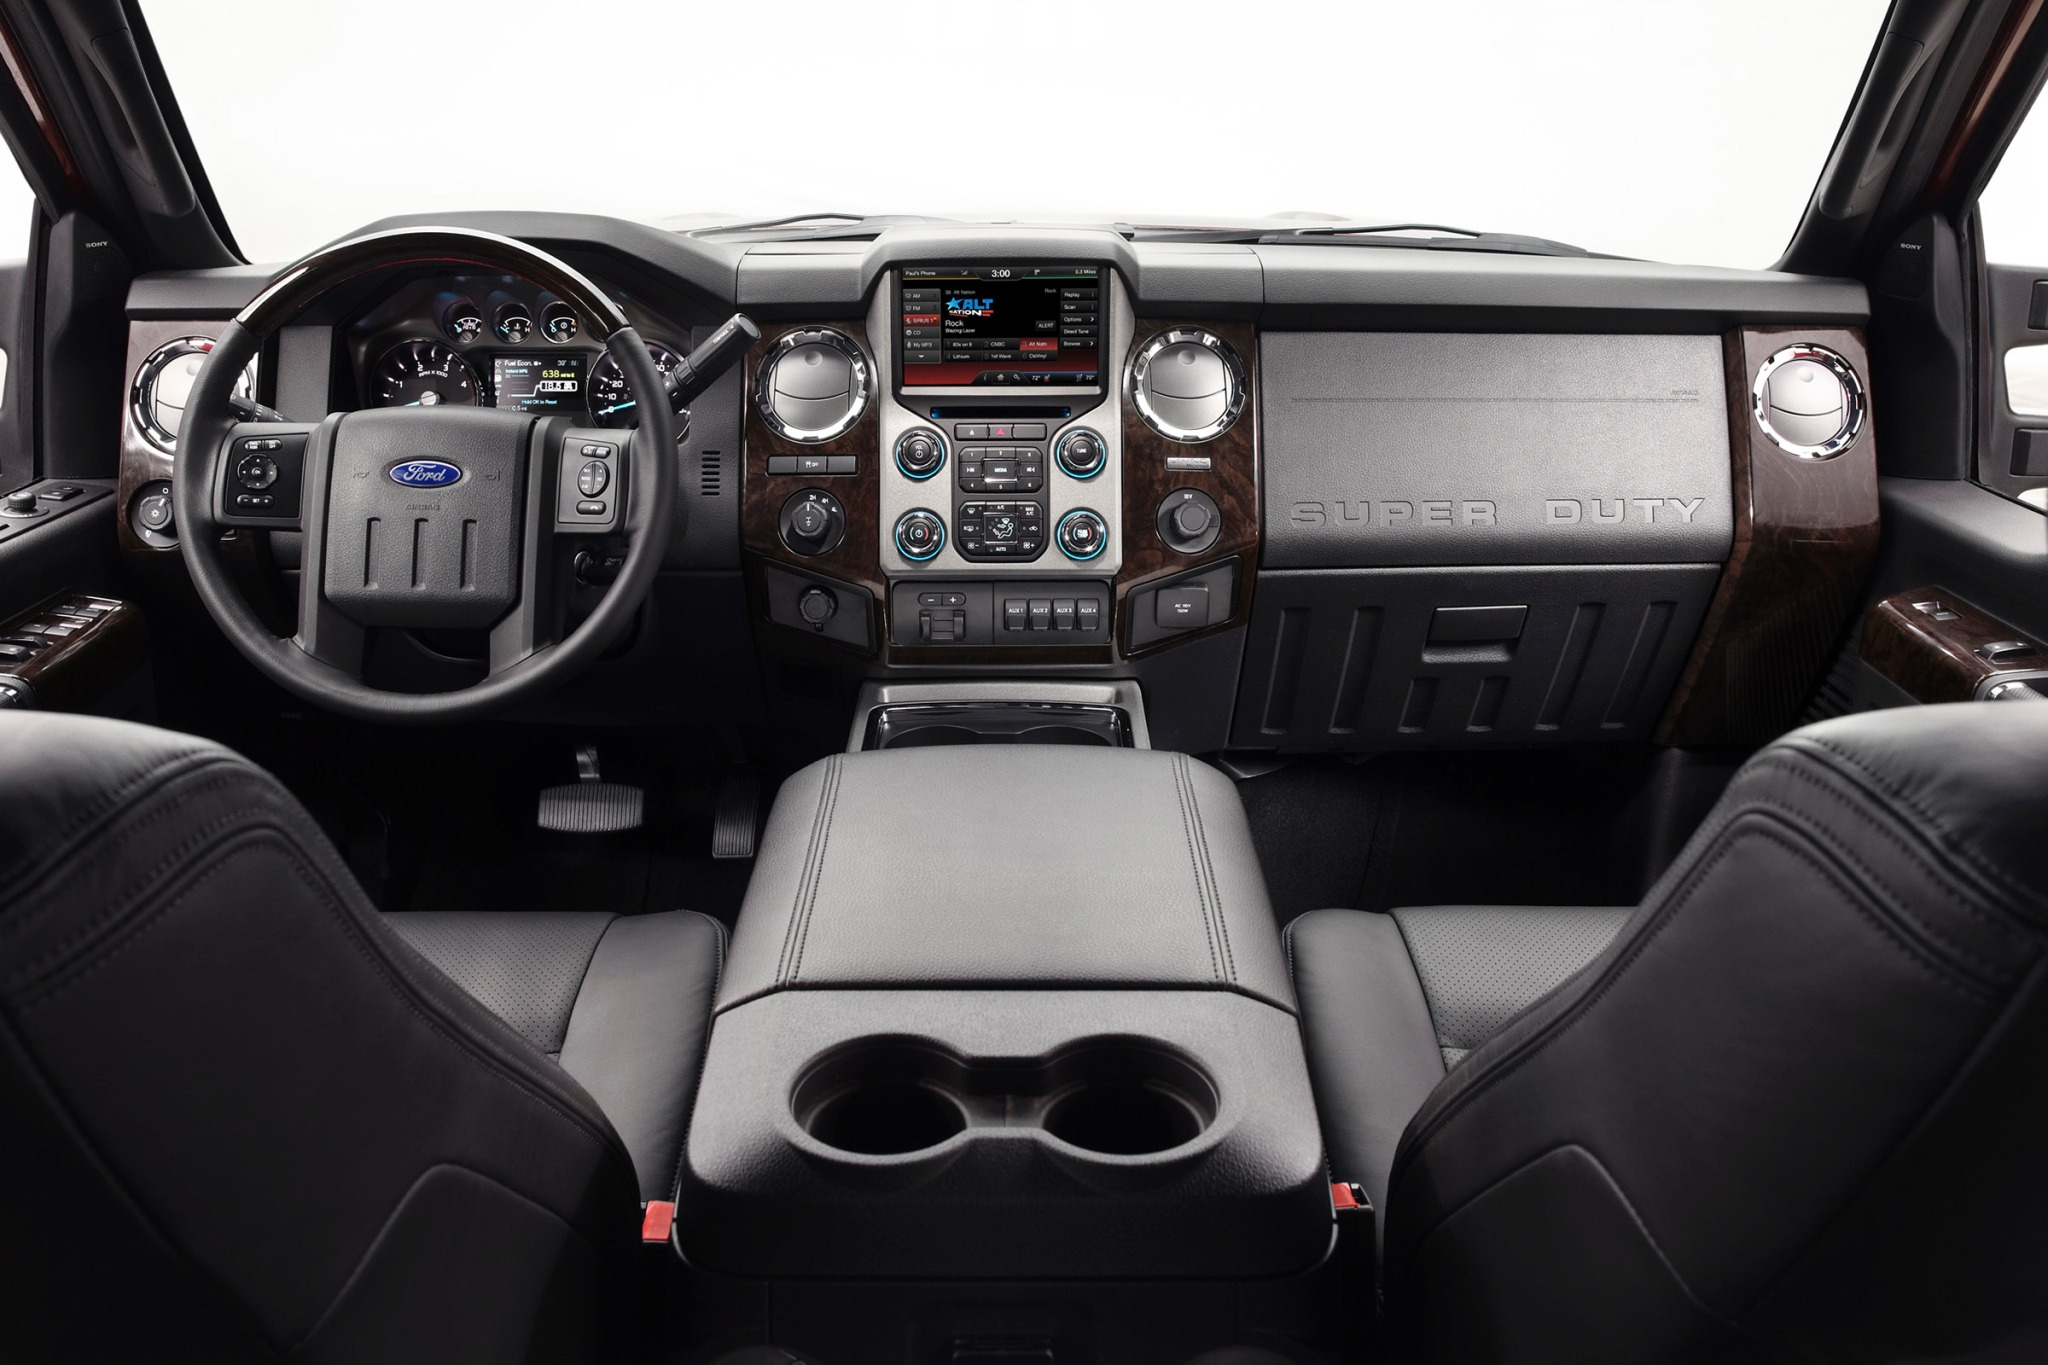 2015 Ford F-450 Super Dut interior #6